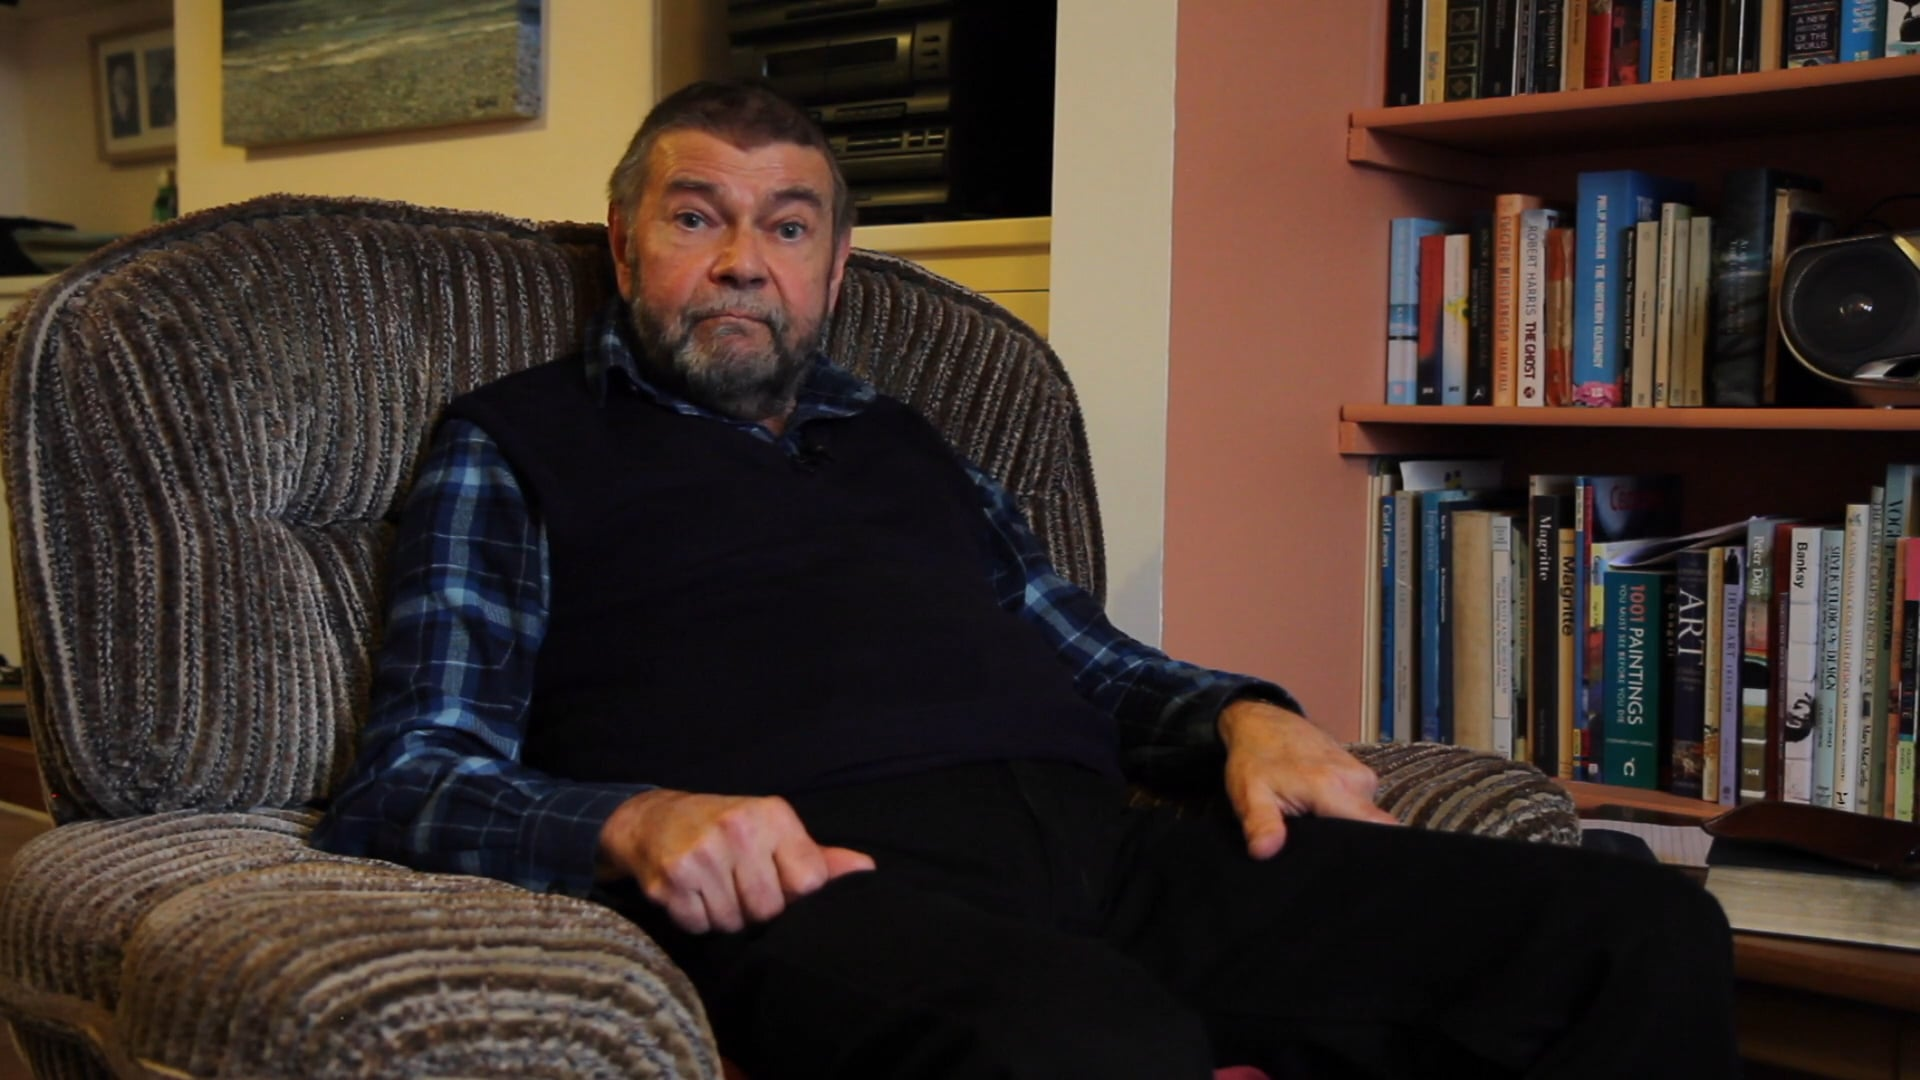 John Pilkington, RLF Beneficiary